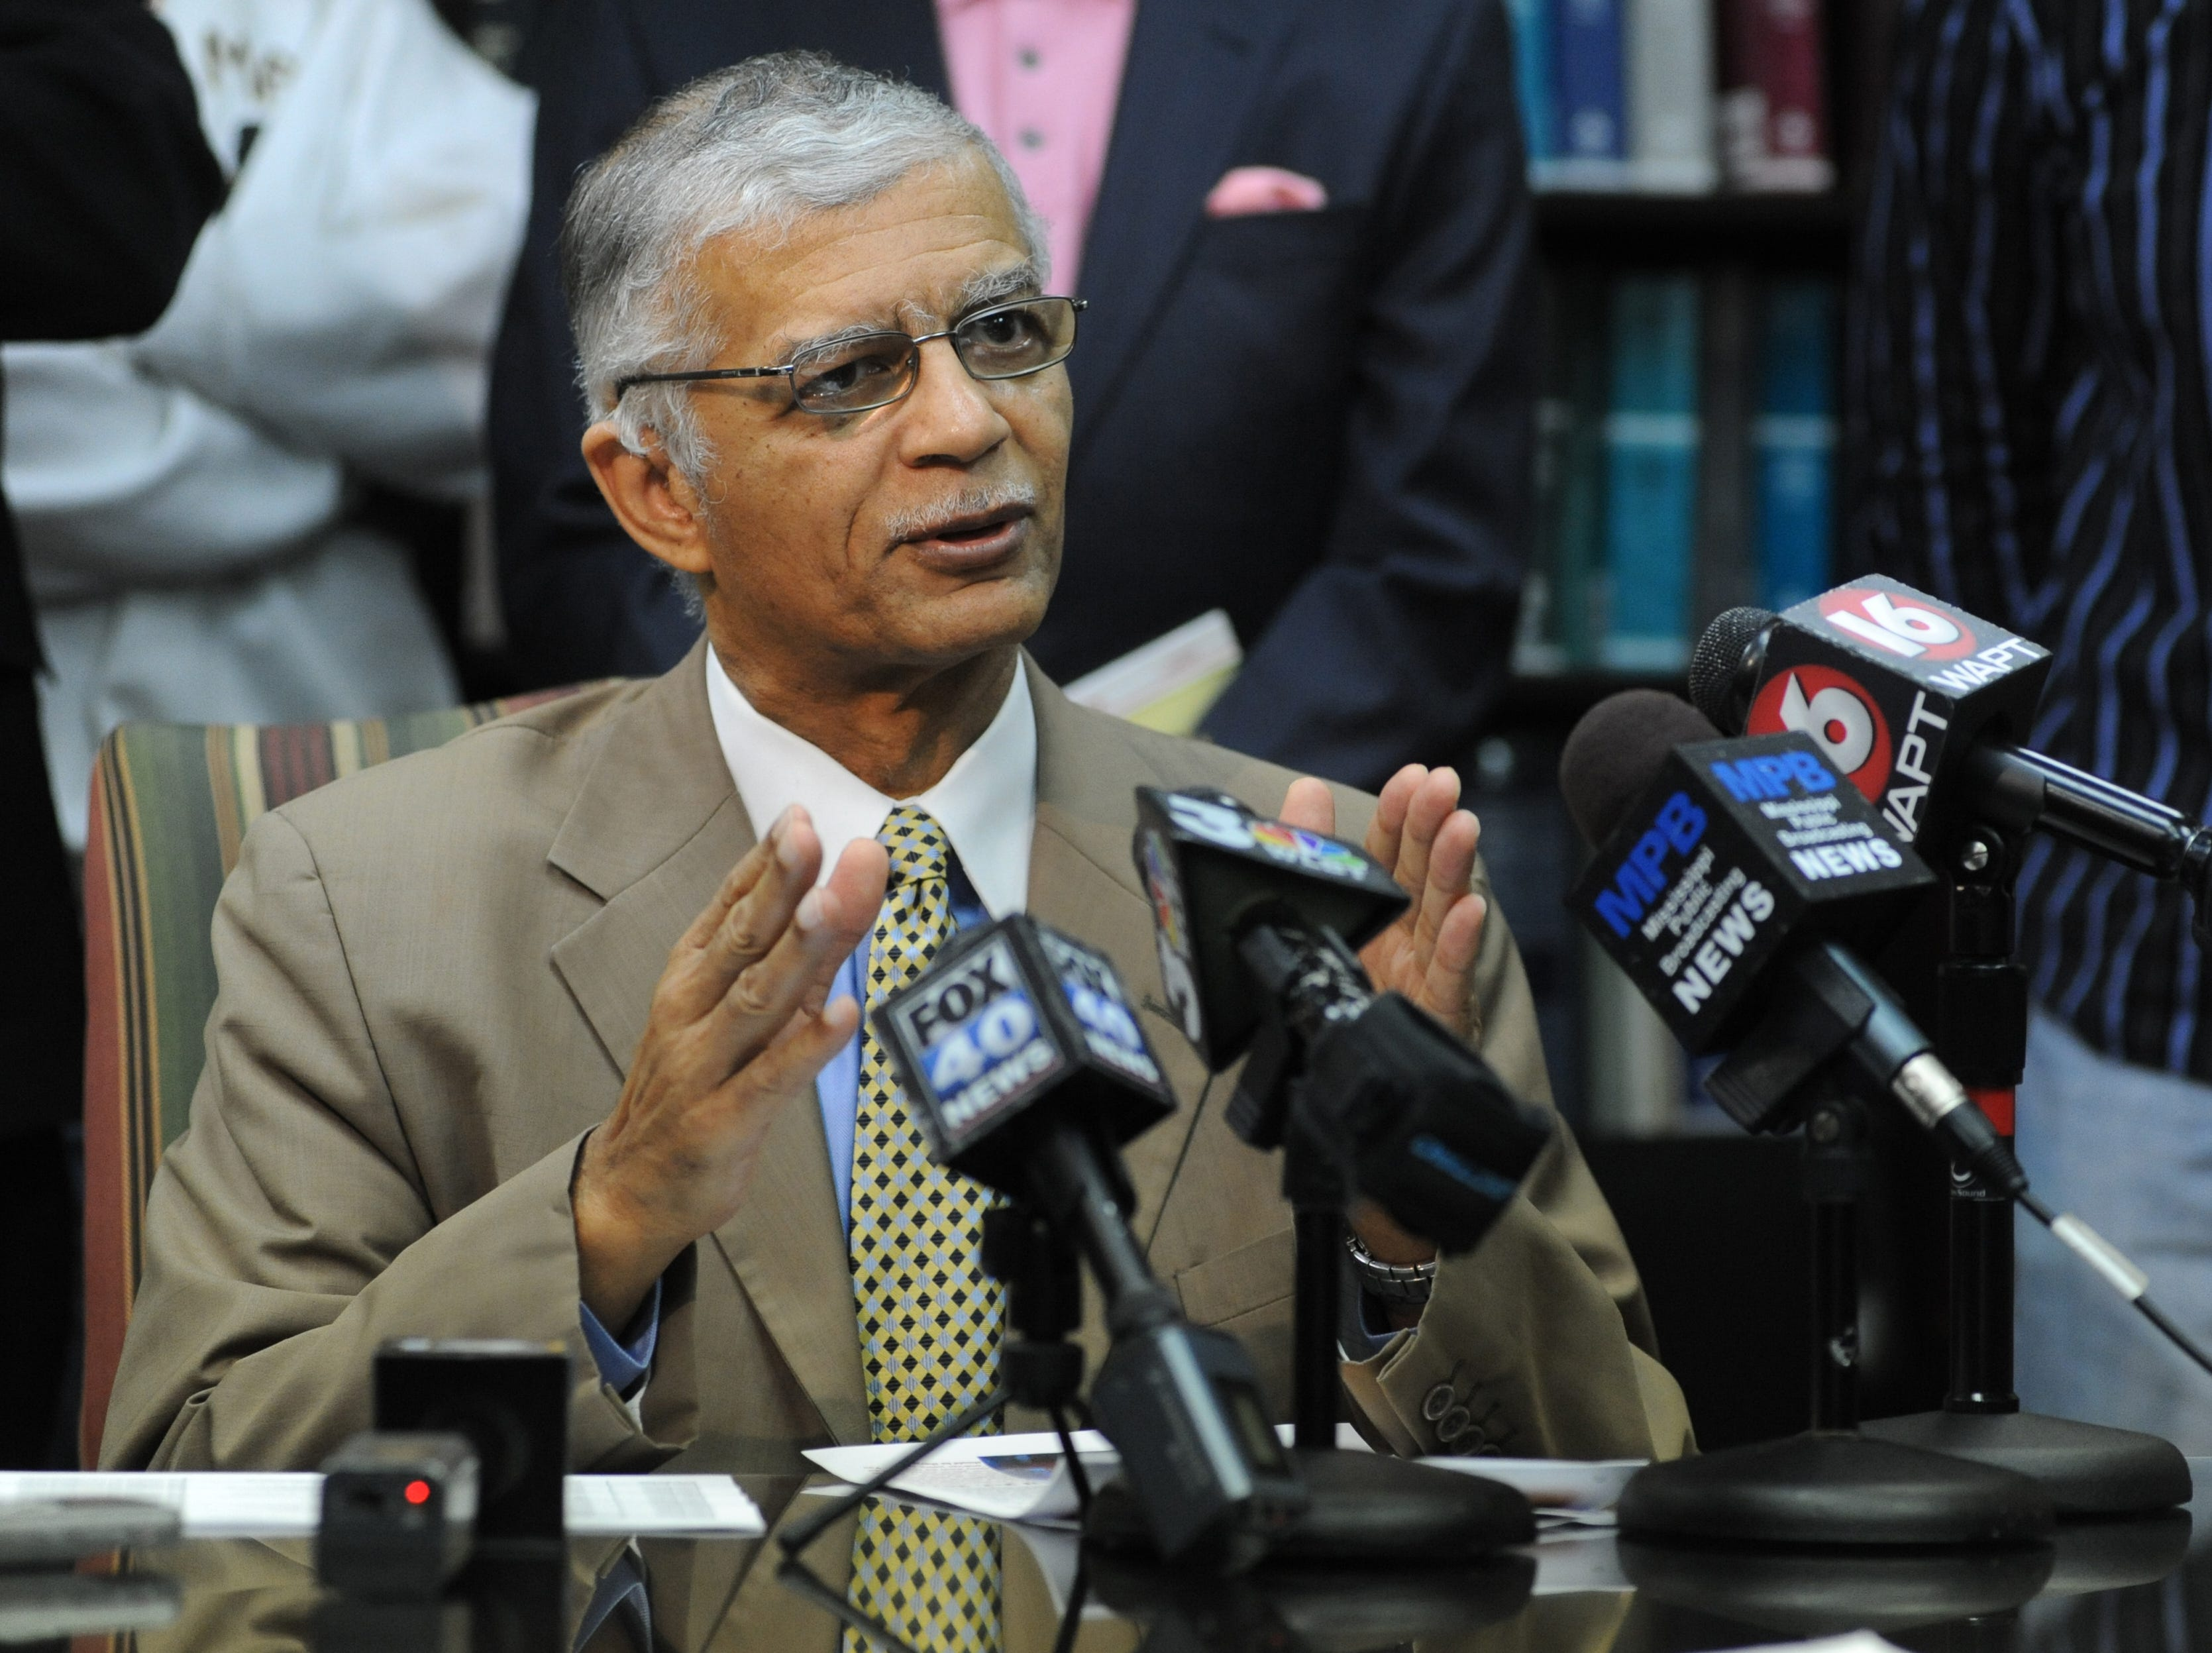 In the wake of pardons handed out by former Gov. Haley Barbour before leaving office, attorney Chokwe Lumumba continues to seek pardons for Jamie and Gladys Scott who were paroled last year.